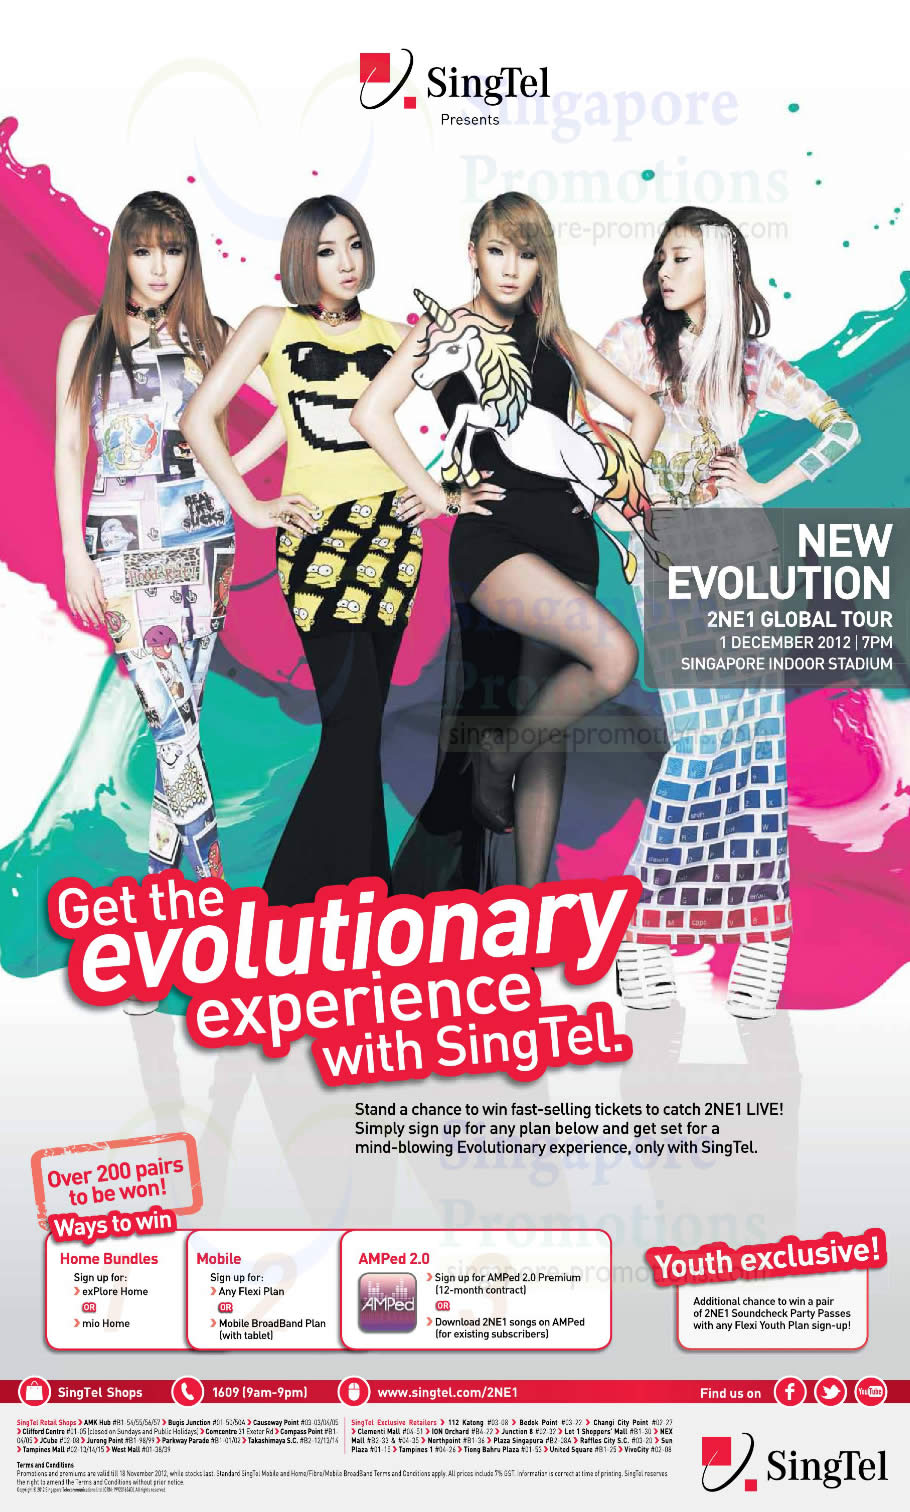 Win Tickets To Catch New Evolution 2NE1 Global Tour